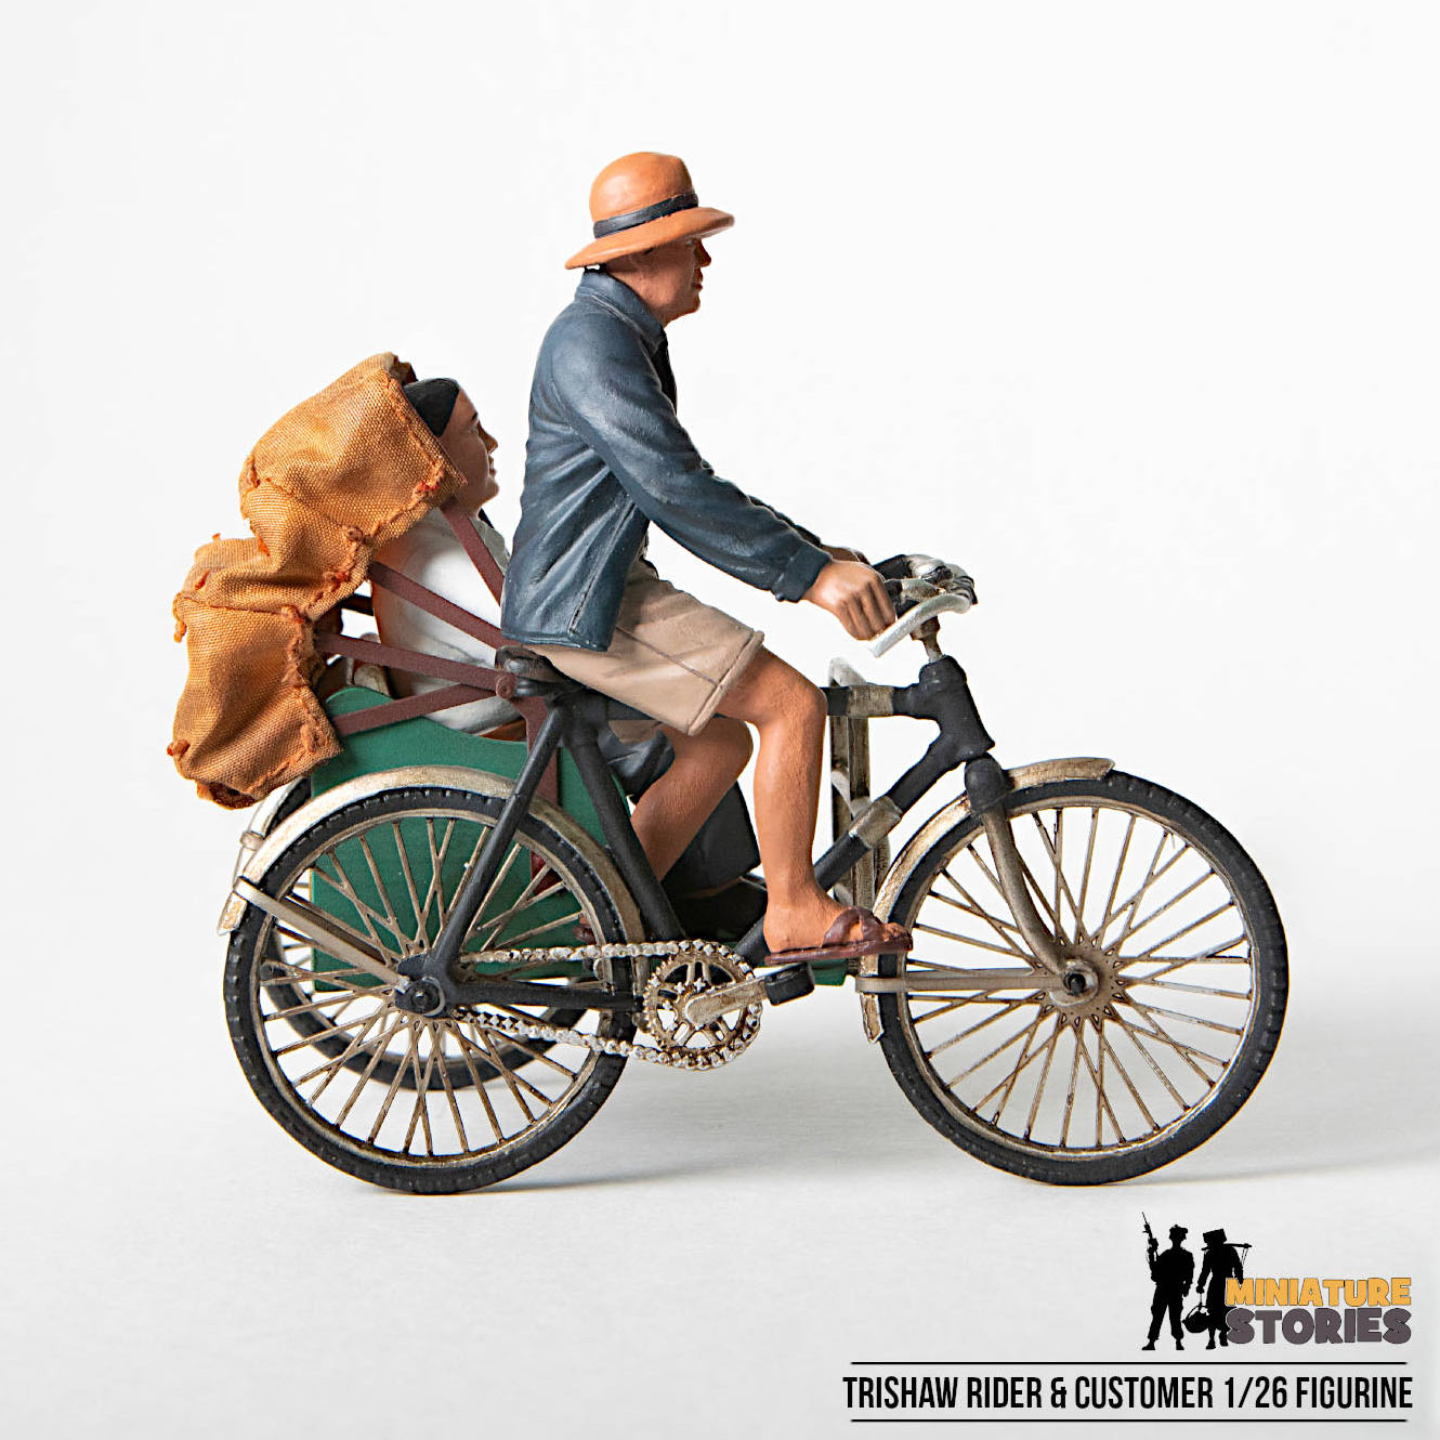 Trishaw Rider and Customer Figurine